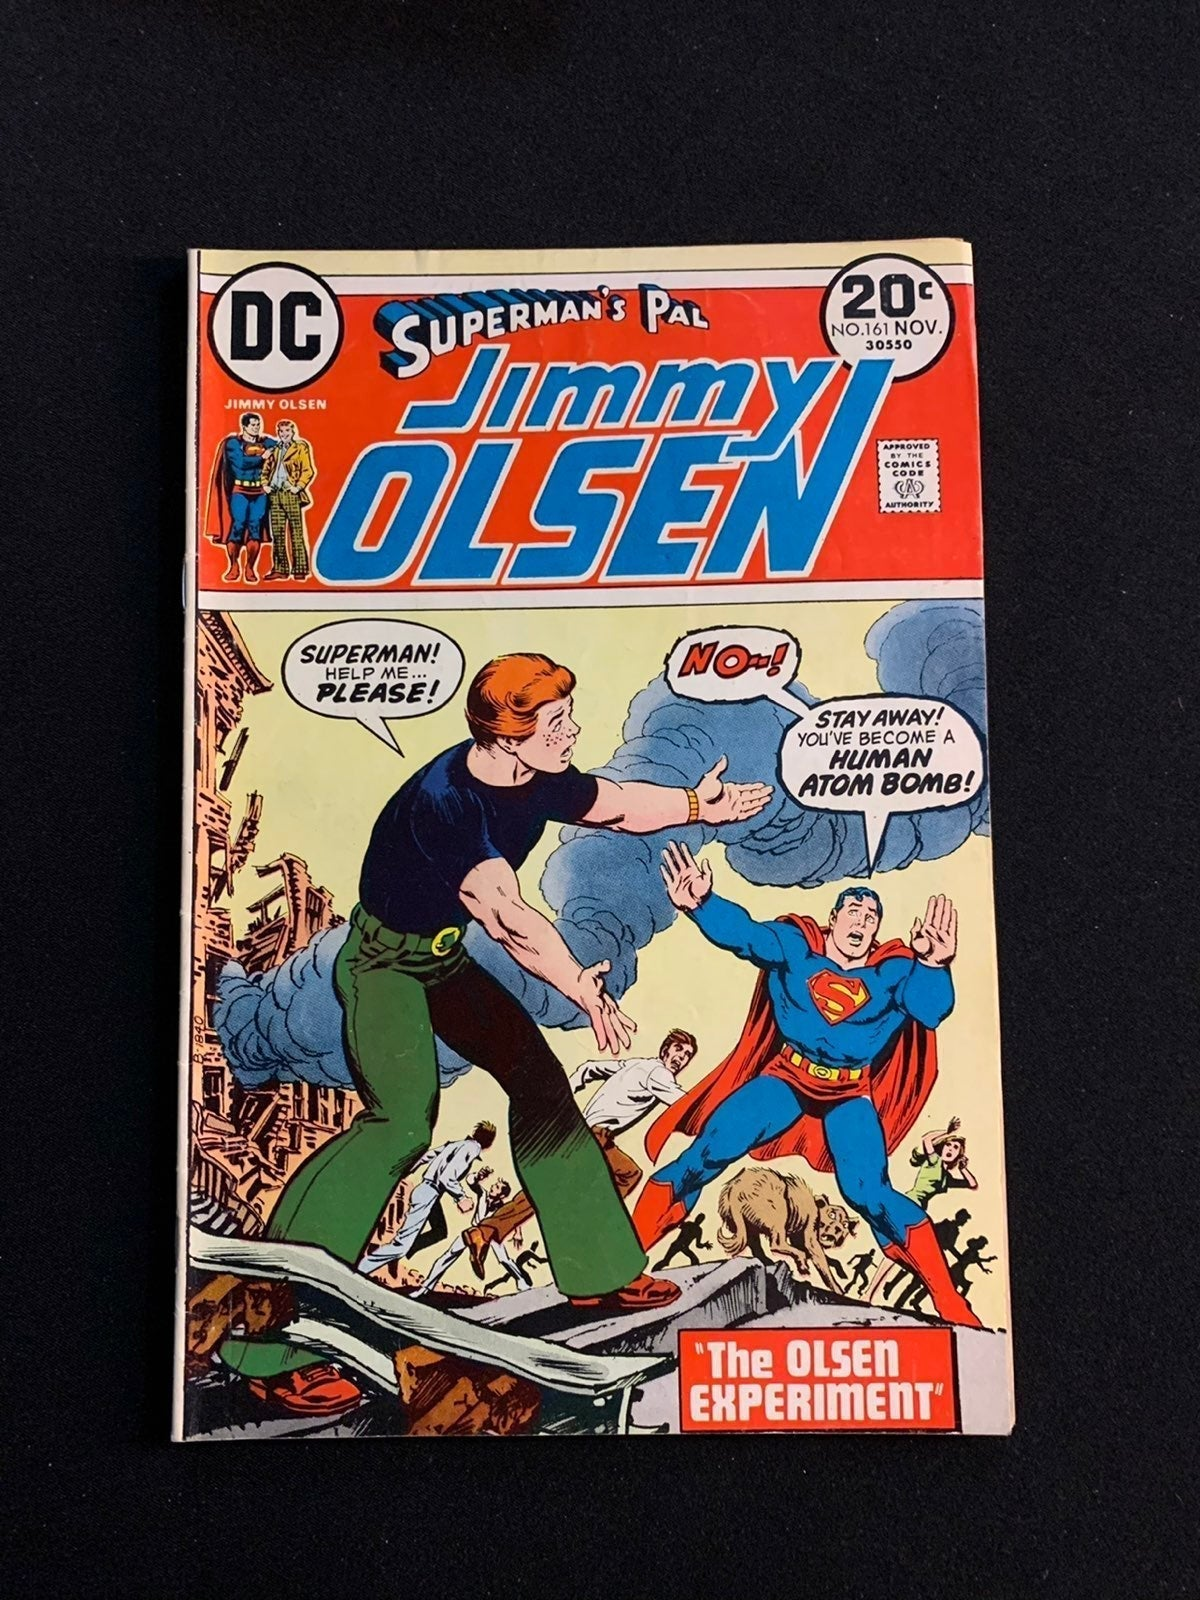 Superman's Pal Jimmy Olsen 155 & 161